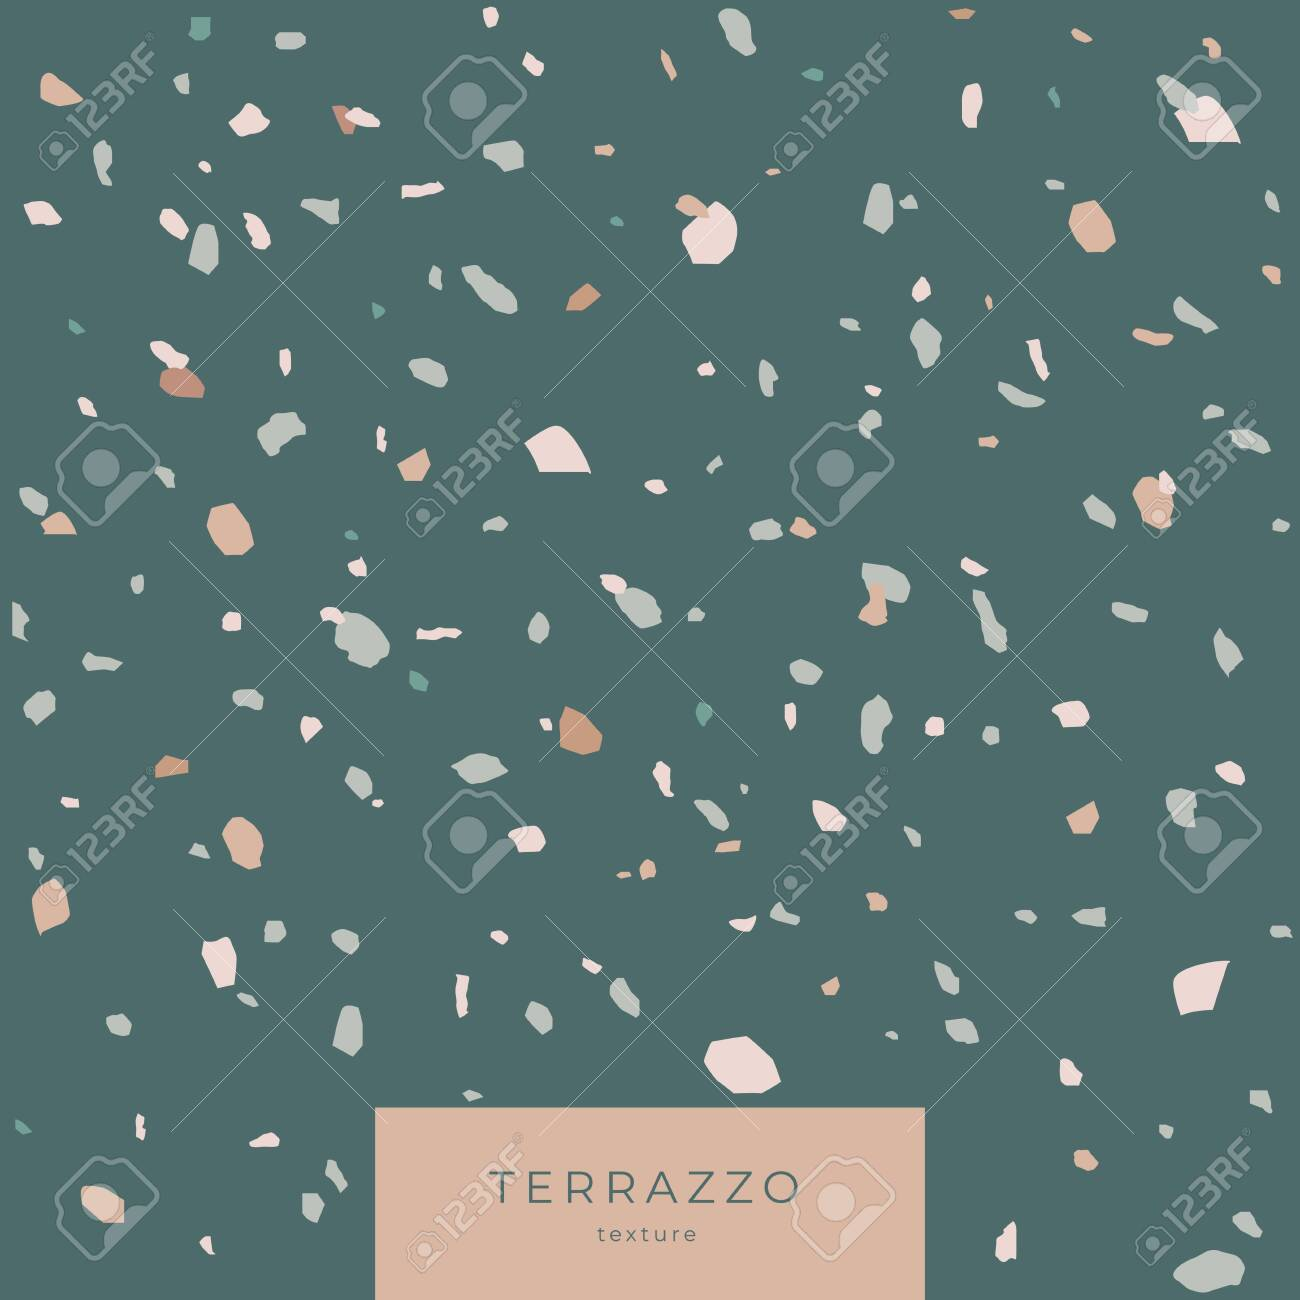 Texture Terrazzo in green colors. Classic italian cover composed of natural stone and concrete. Vector illustration. - 151373622